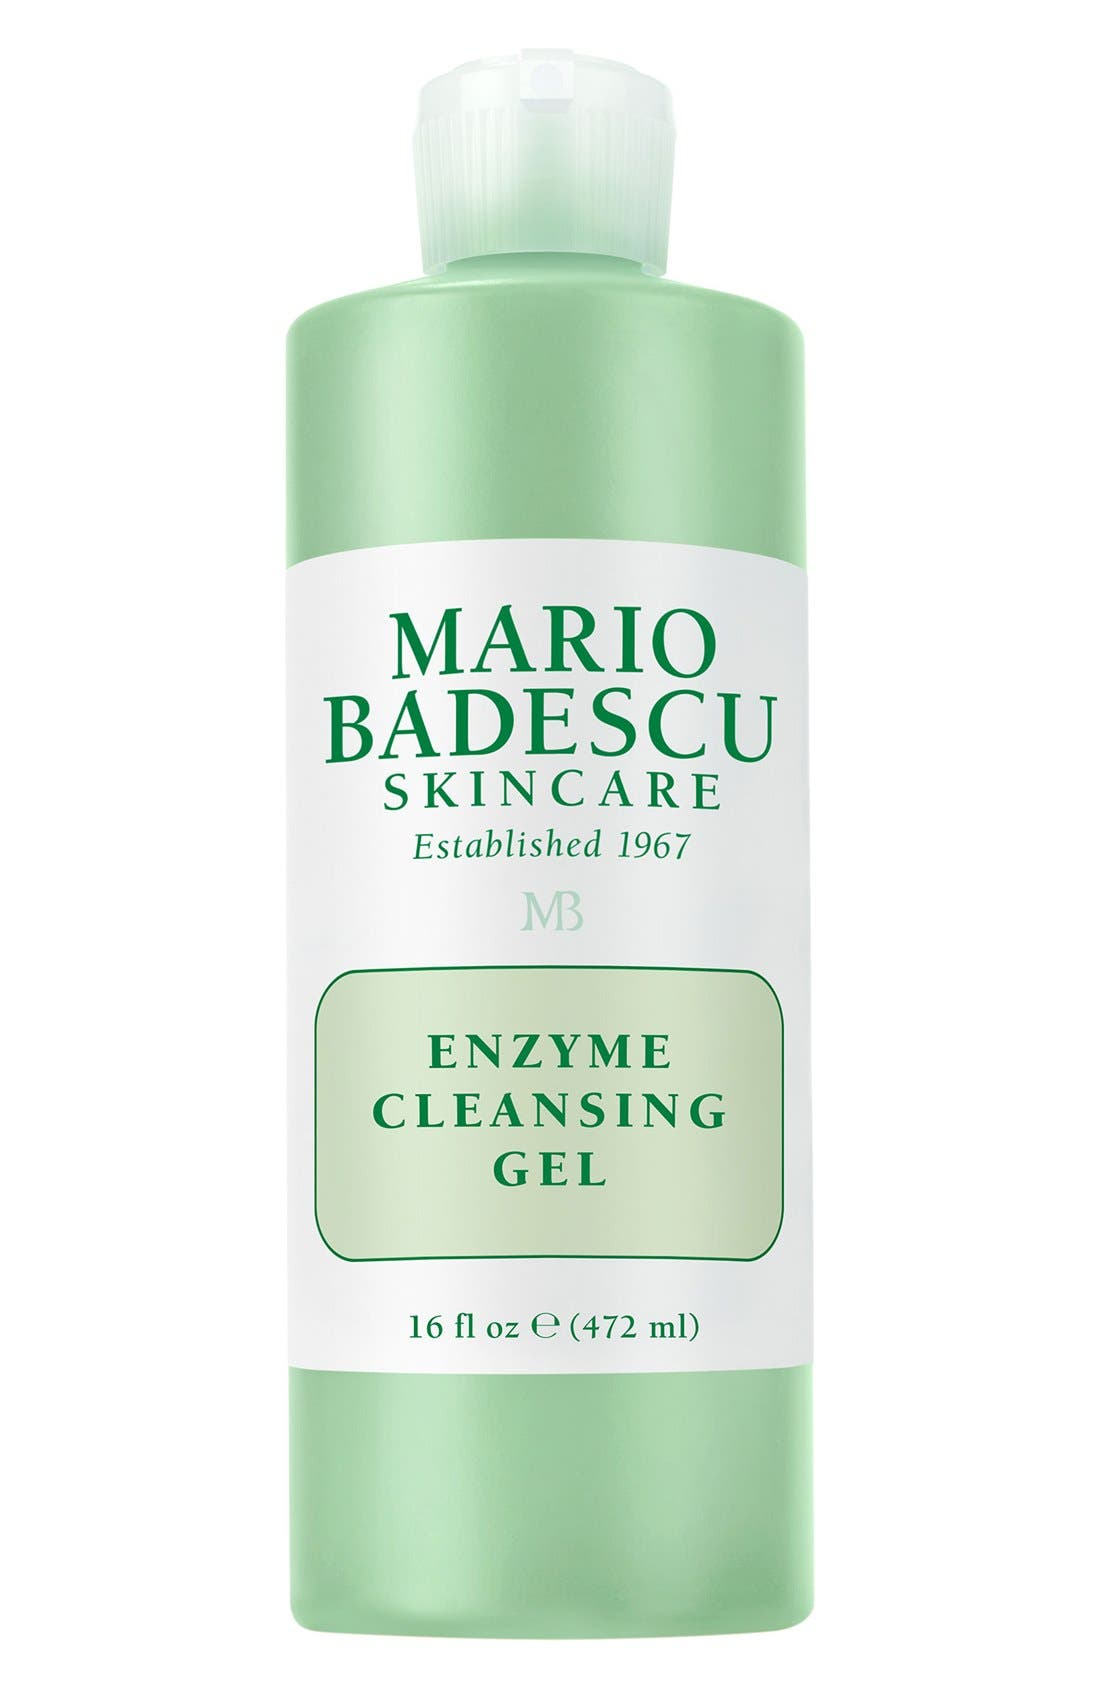 Mario Badescu Enzyme Cleansing Gel (16 oz.)